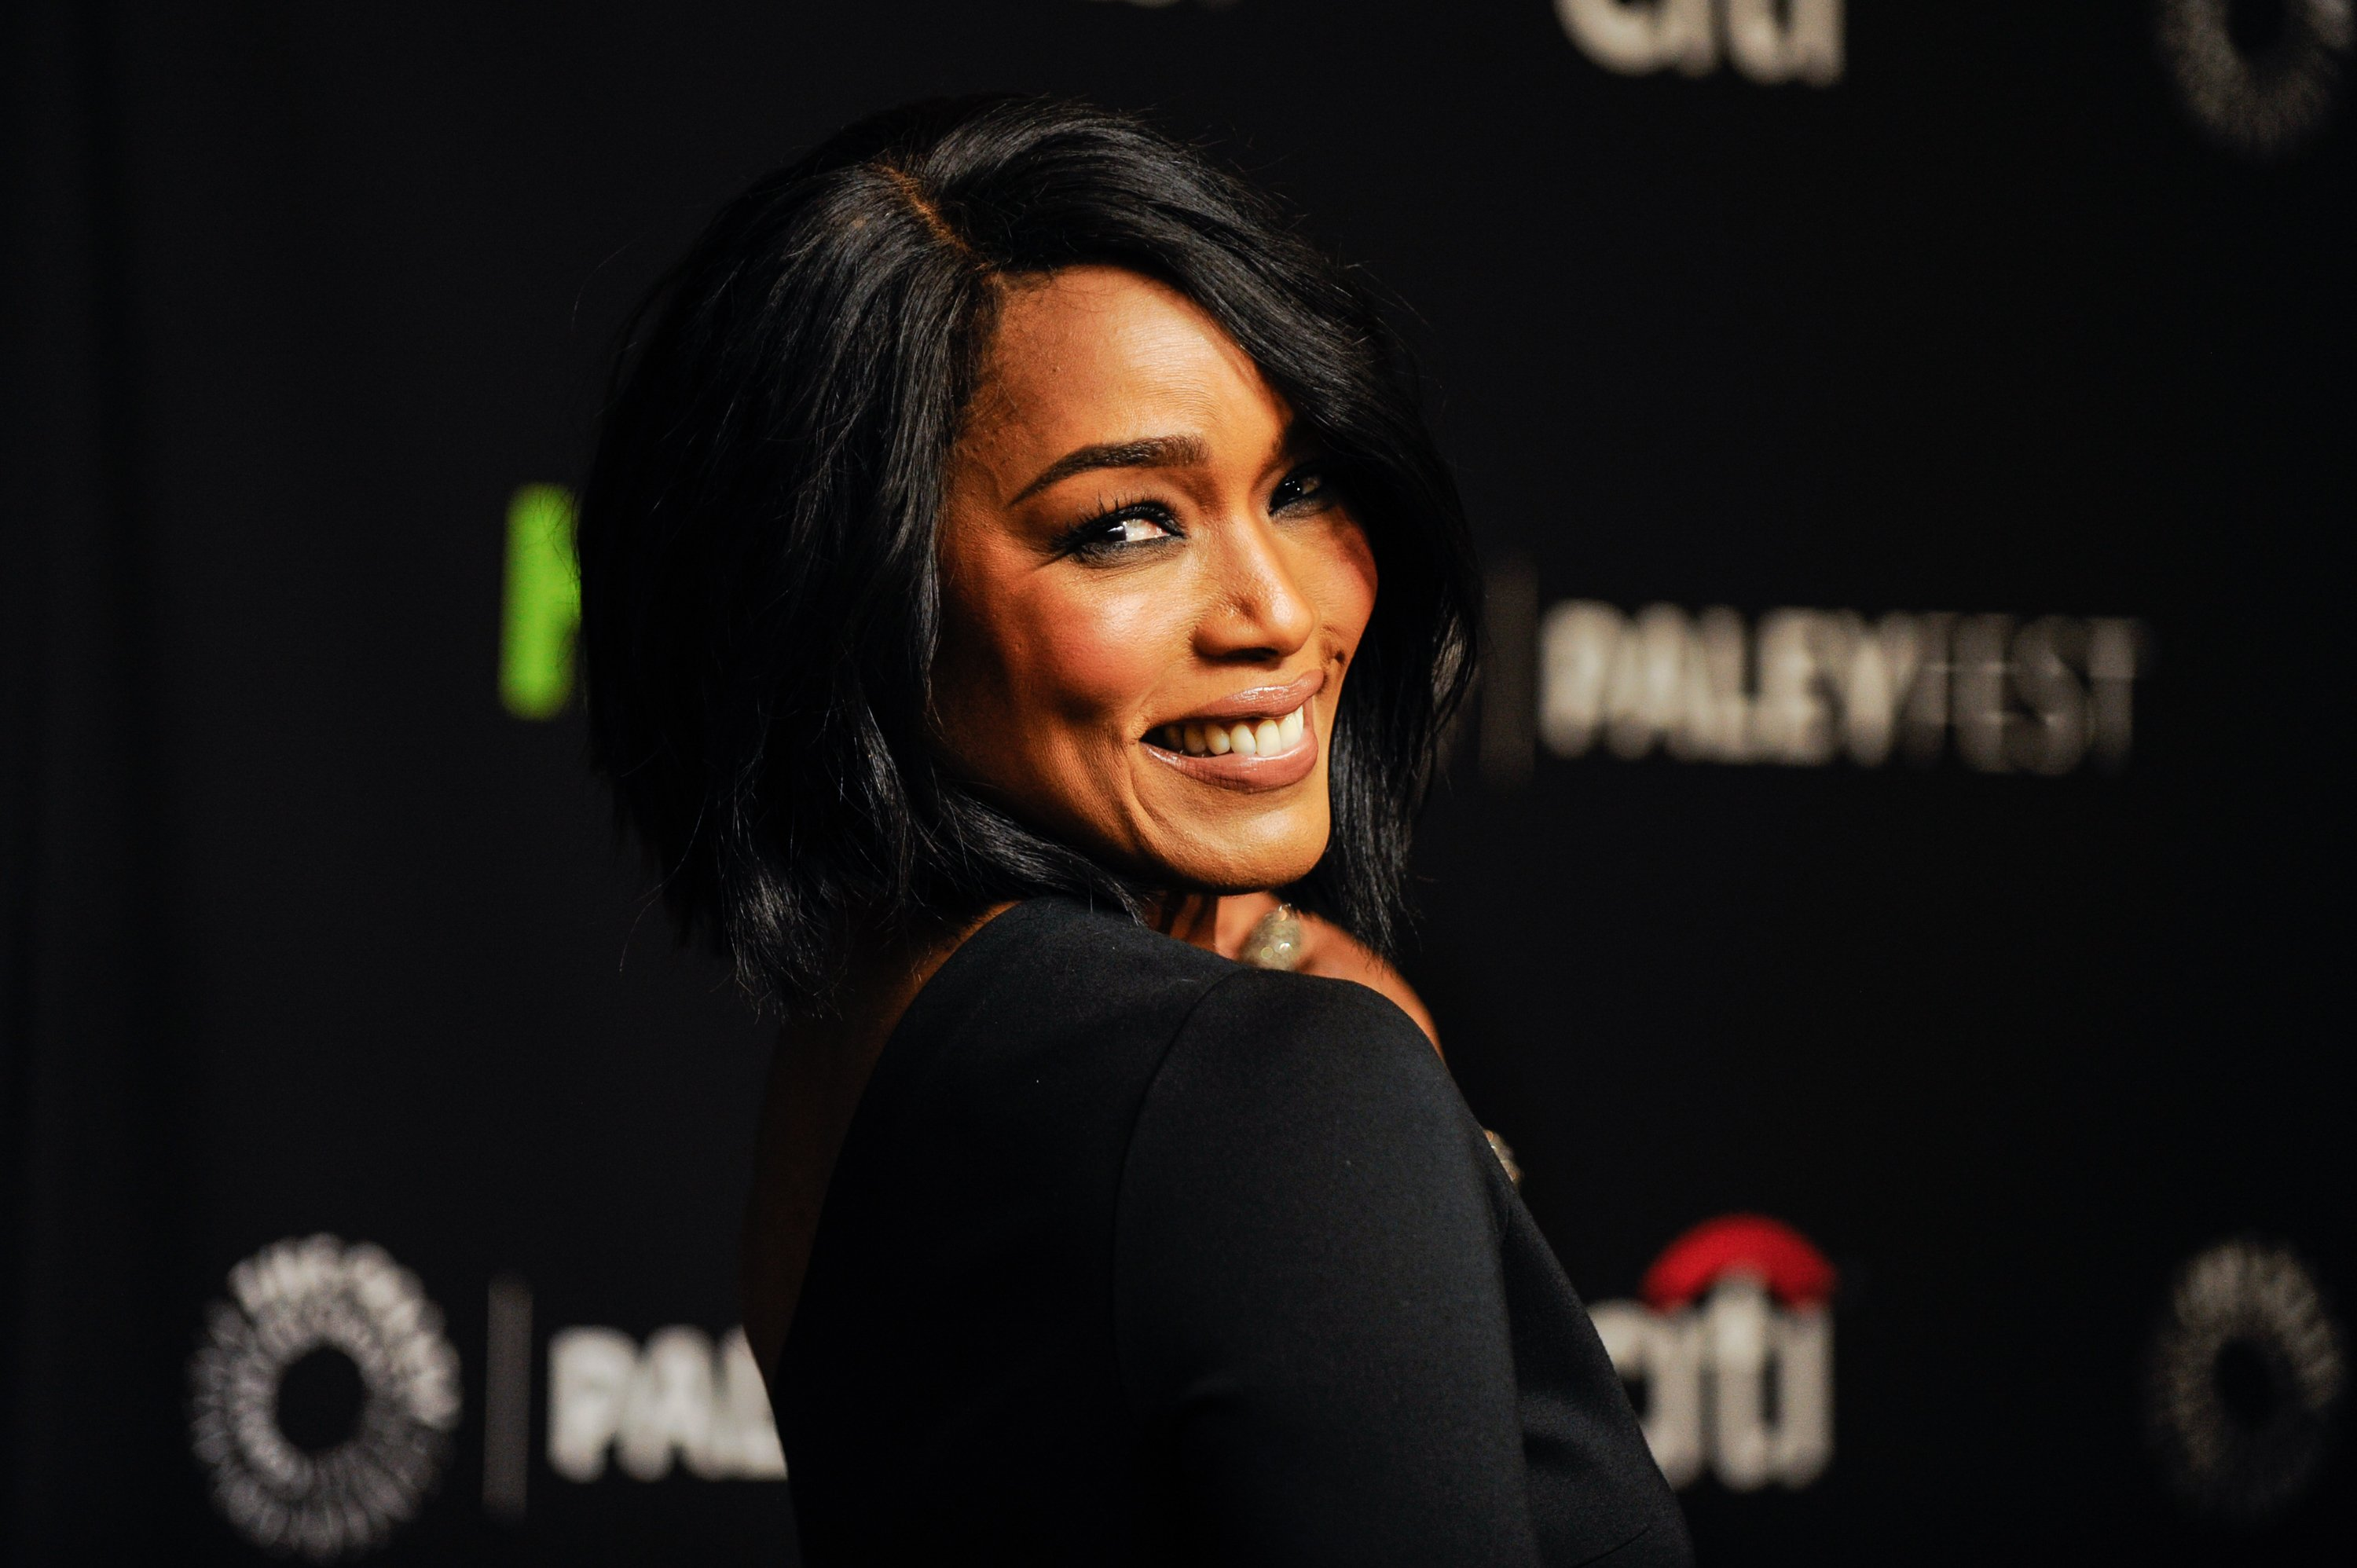 Actress Angela Bassett attends The Paley Center For Media's 33rd Annual PaleyFest on March 20, 2016 | Photo: Getty Images